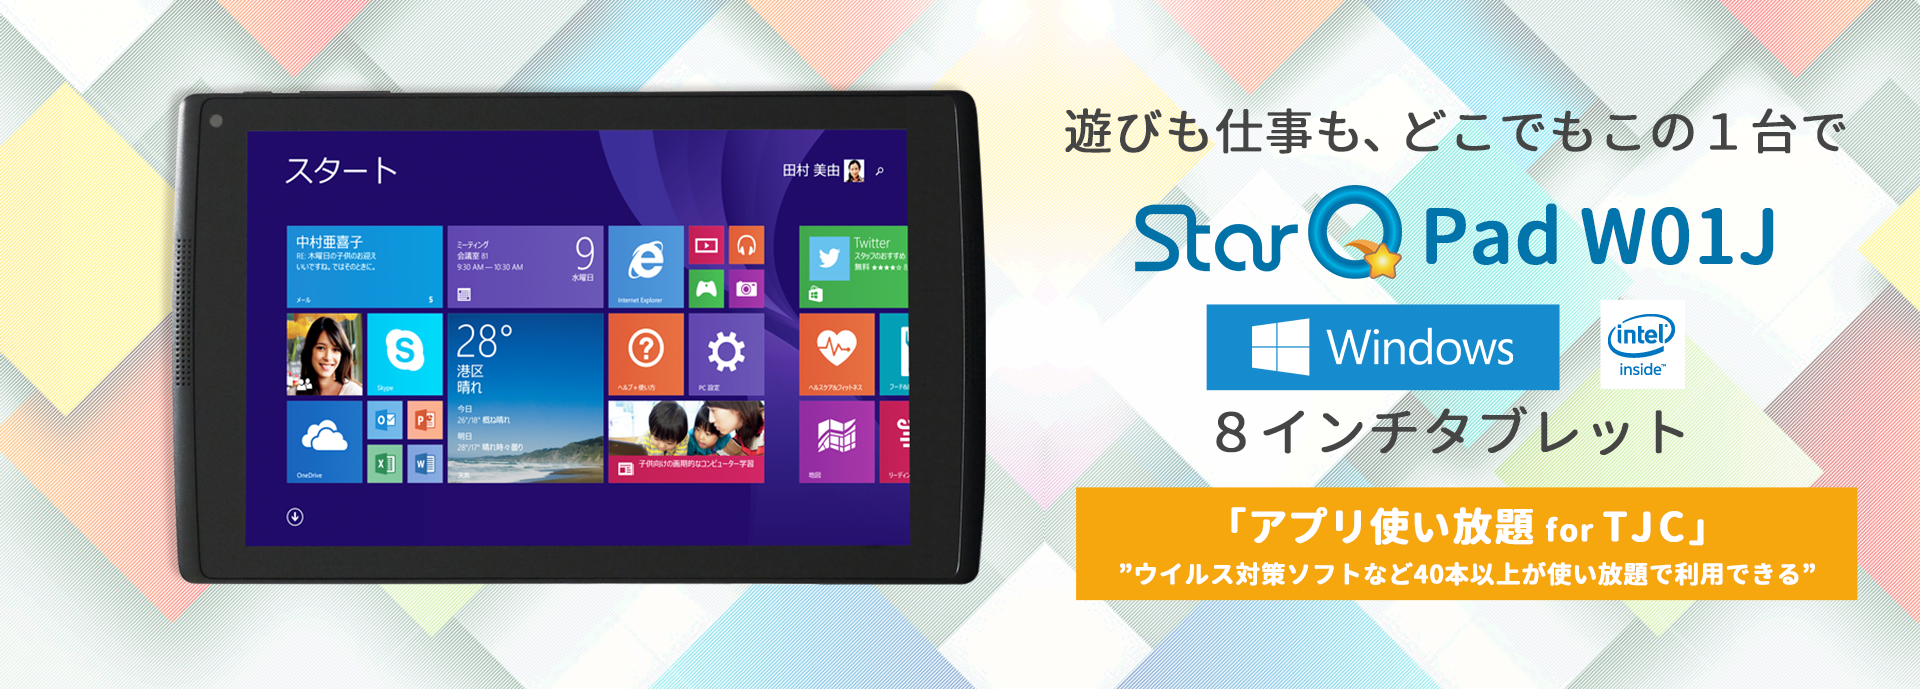 StarQ Pad W01J Windowsタブレット